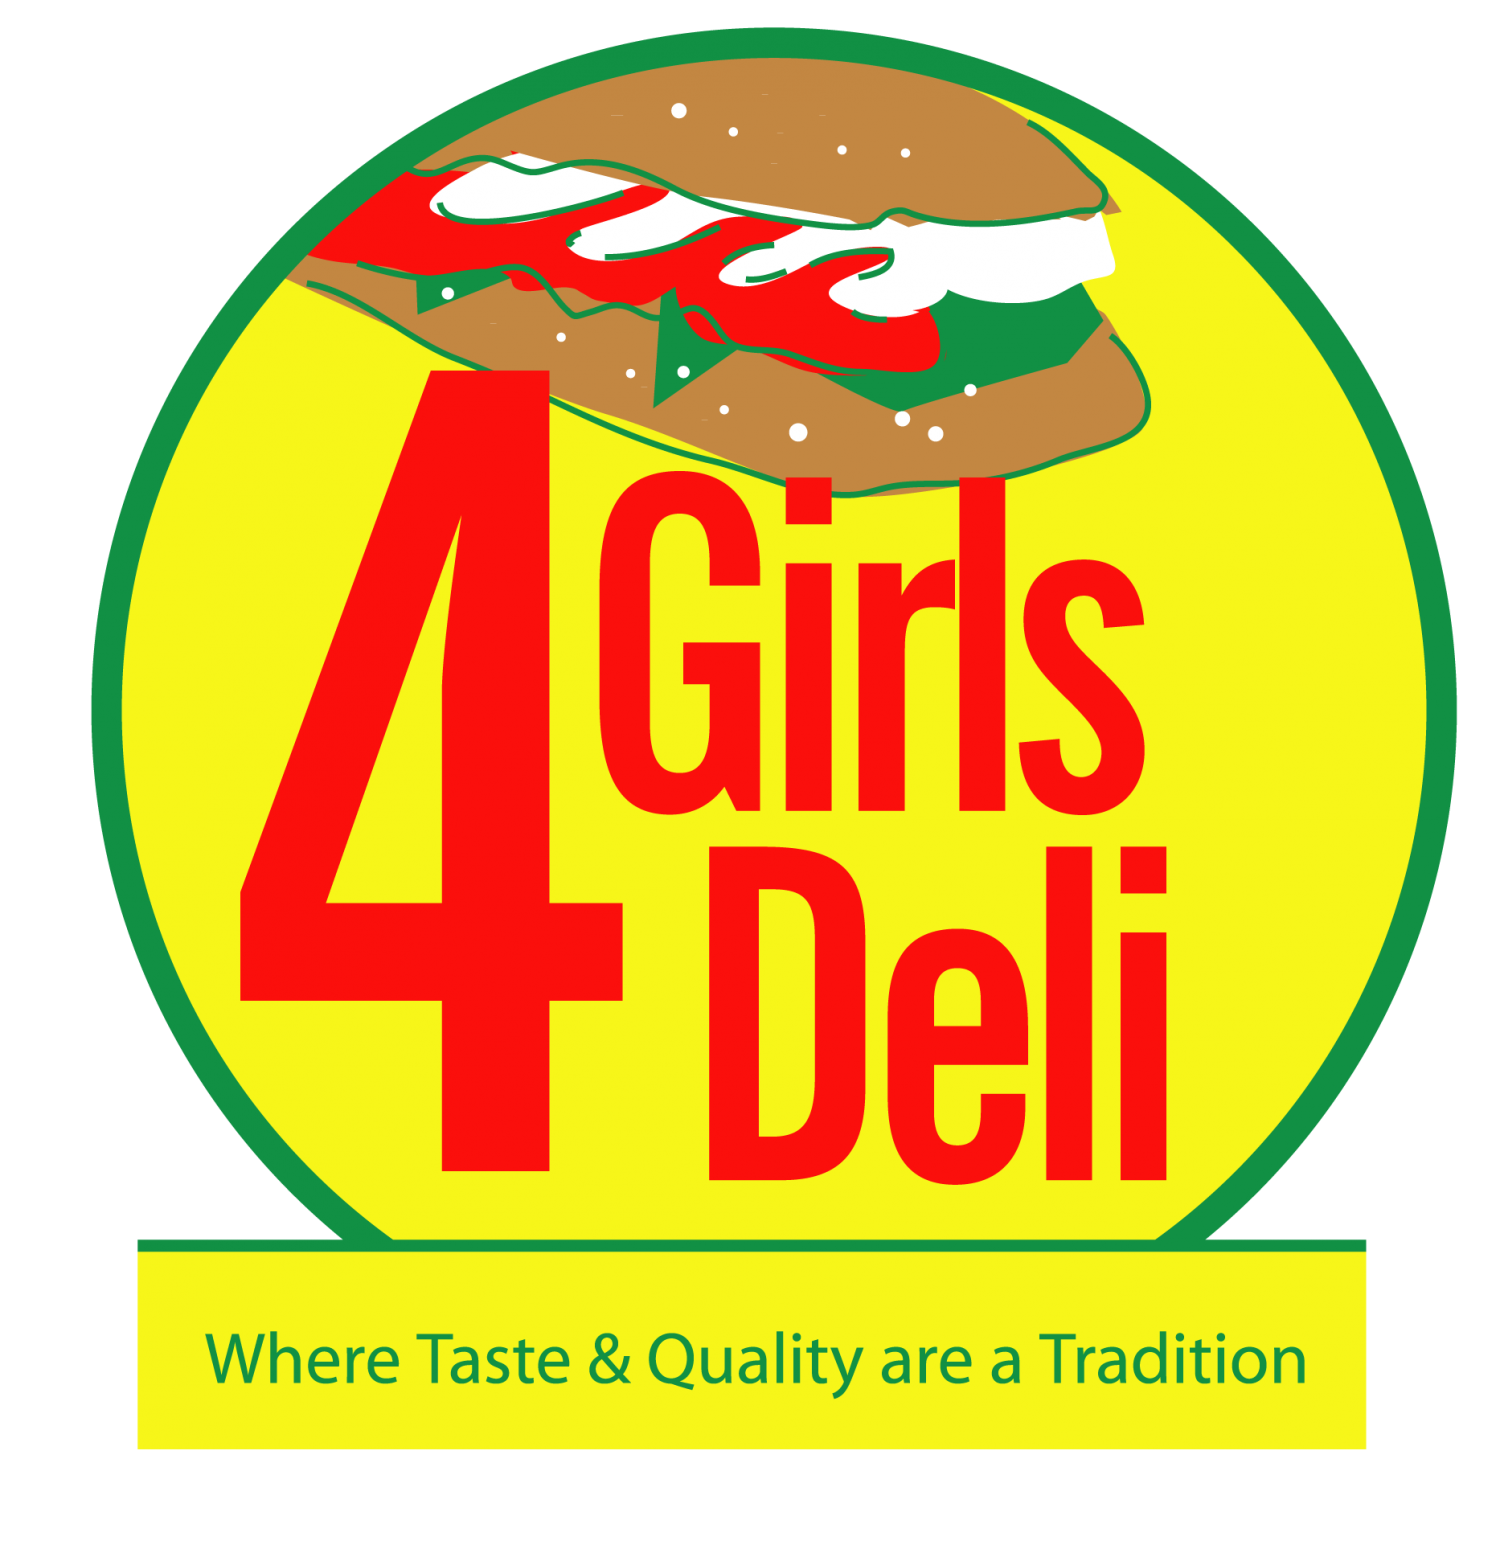 Home girls check out. Restaurants clipart deli shop